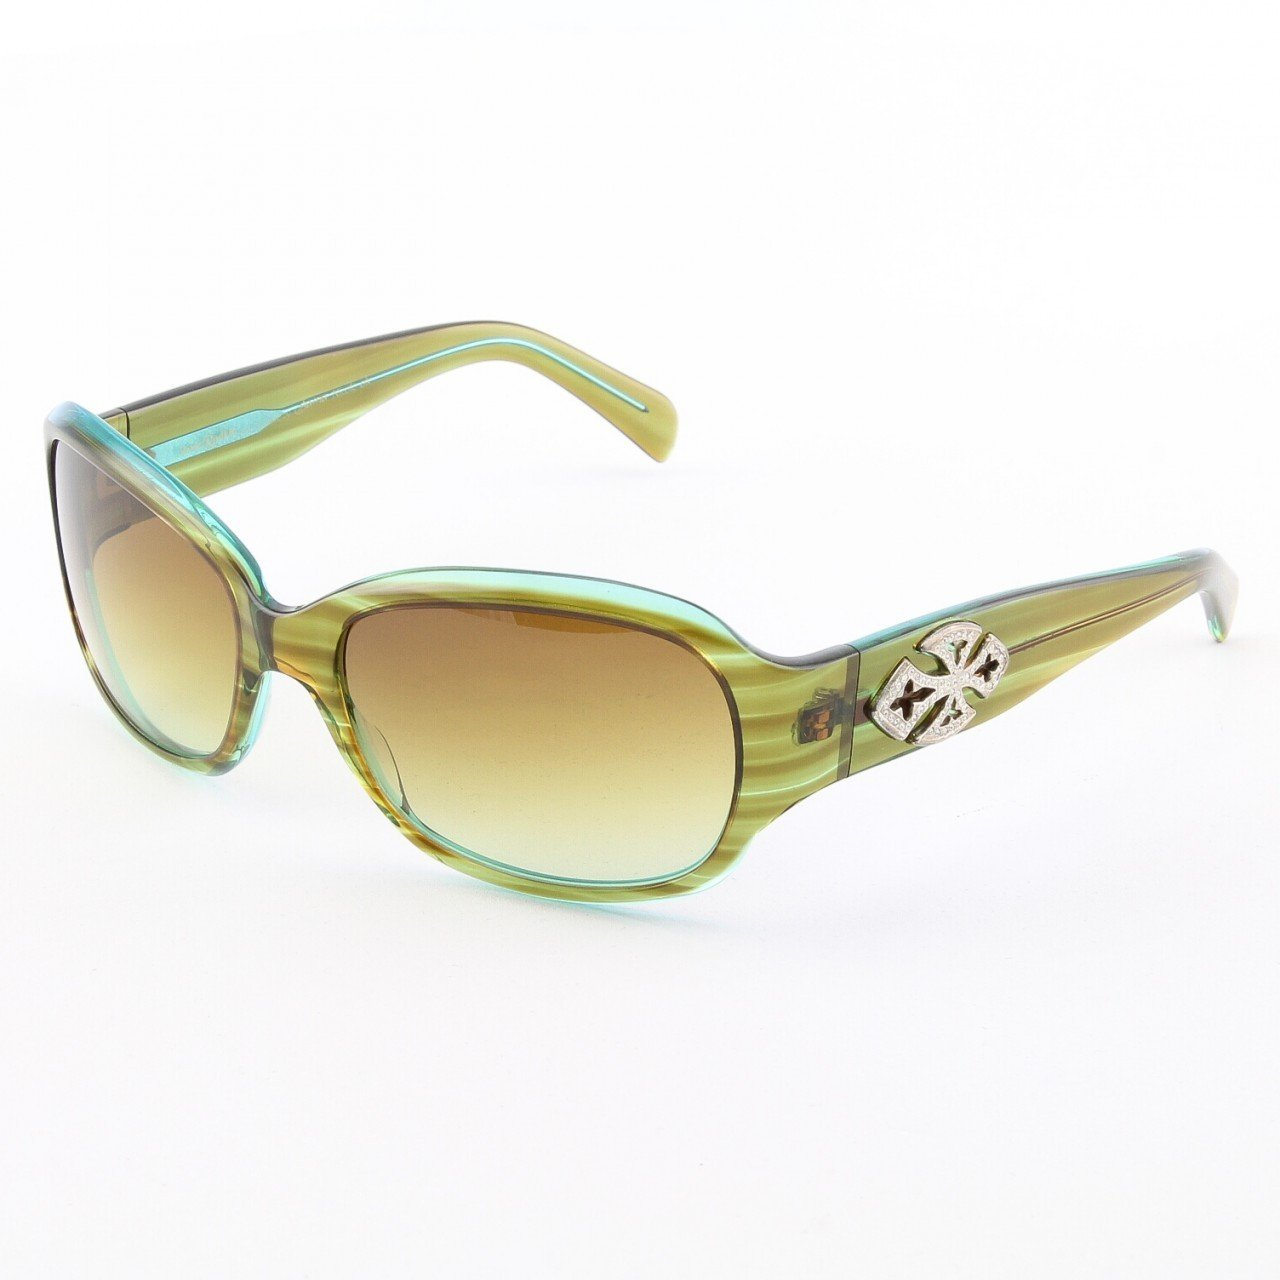 Loree Rodkin Nicole Sunglasses  Olive w/ Brown Gradient Lenses, Sterling Silver & Crystals